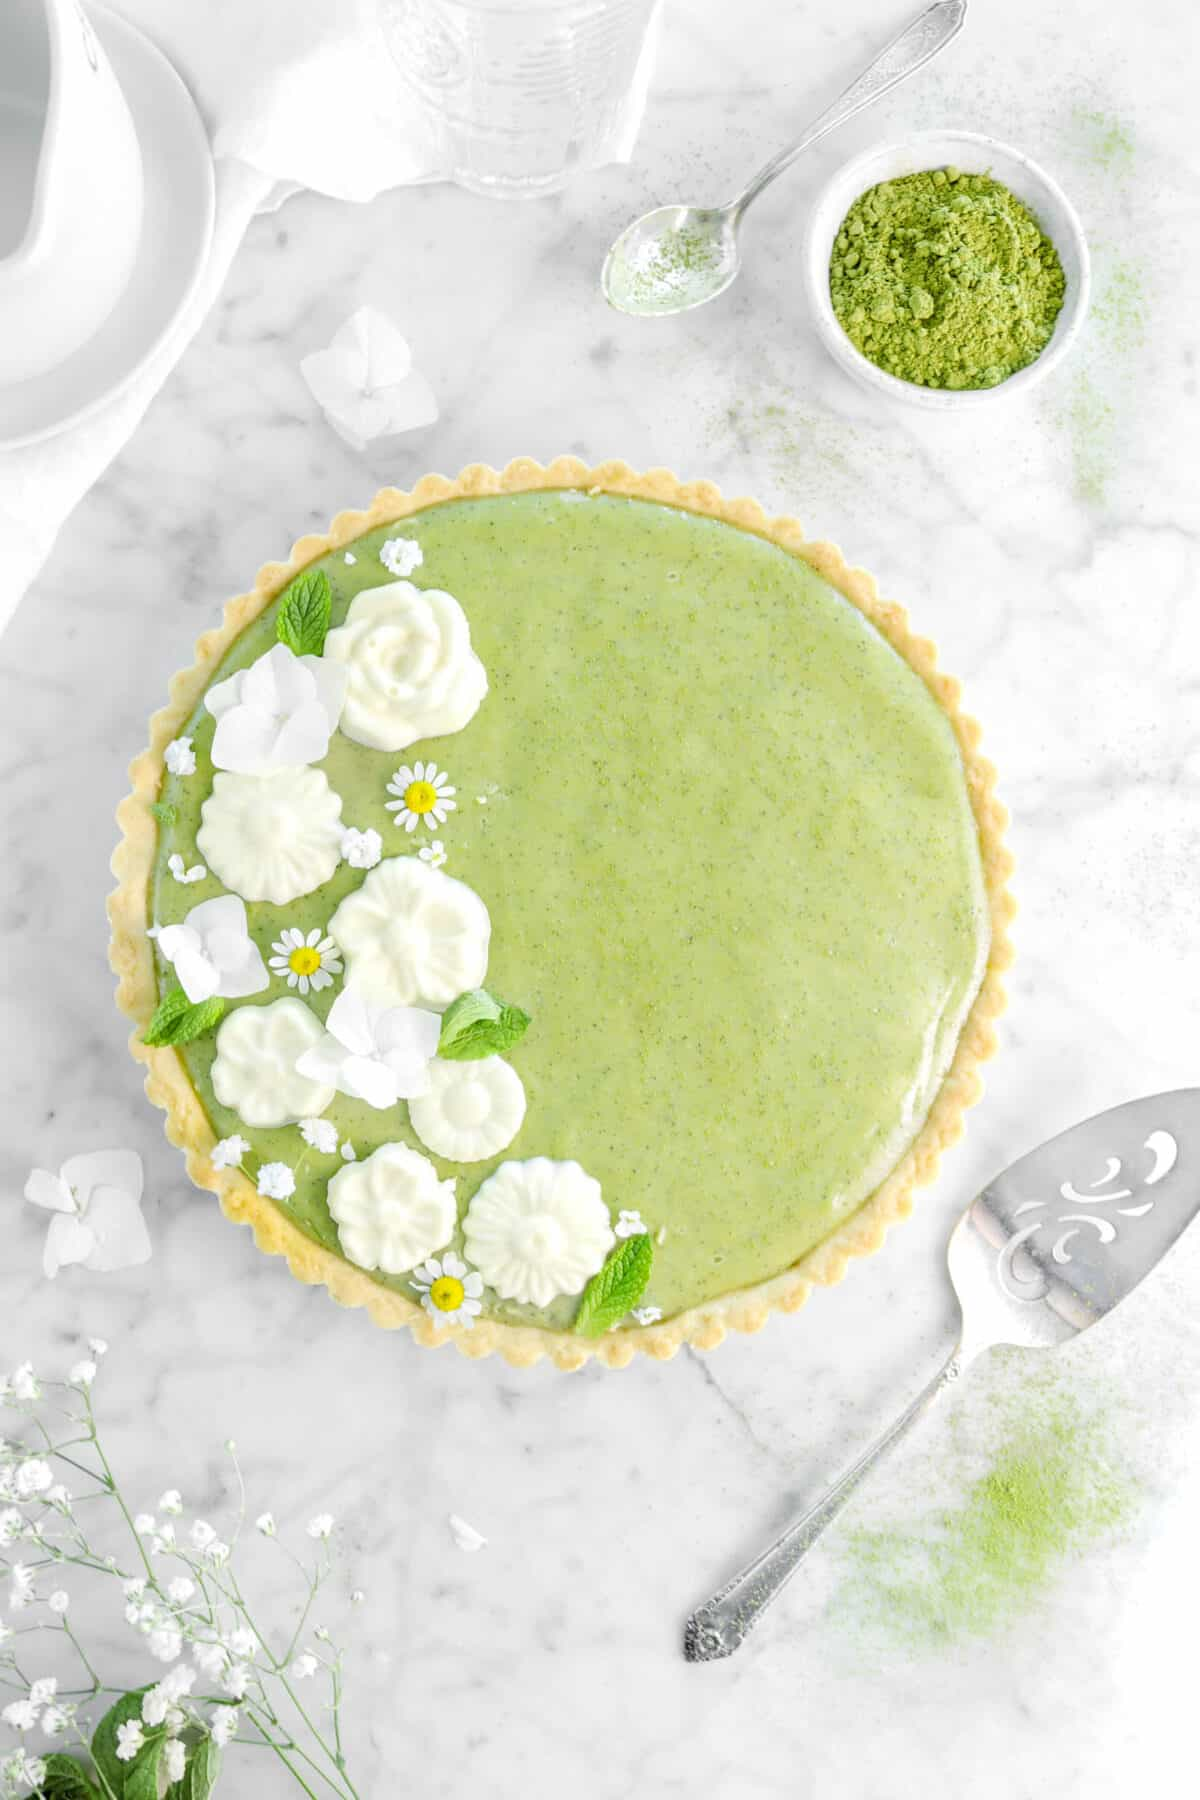 matcha tart on marble counter with white chocolate flowers, mint leaves, other flowers, cake knife, matcha powder, and a napkin